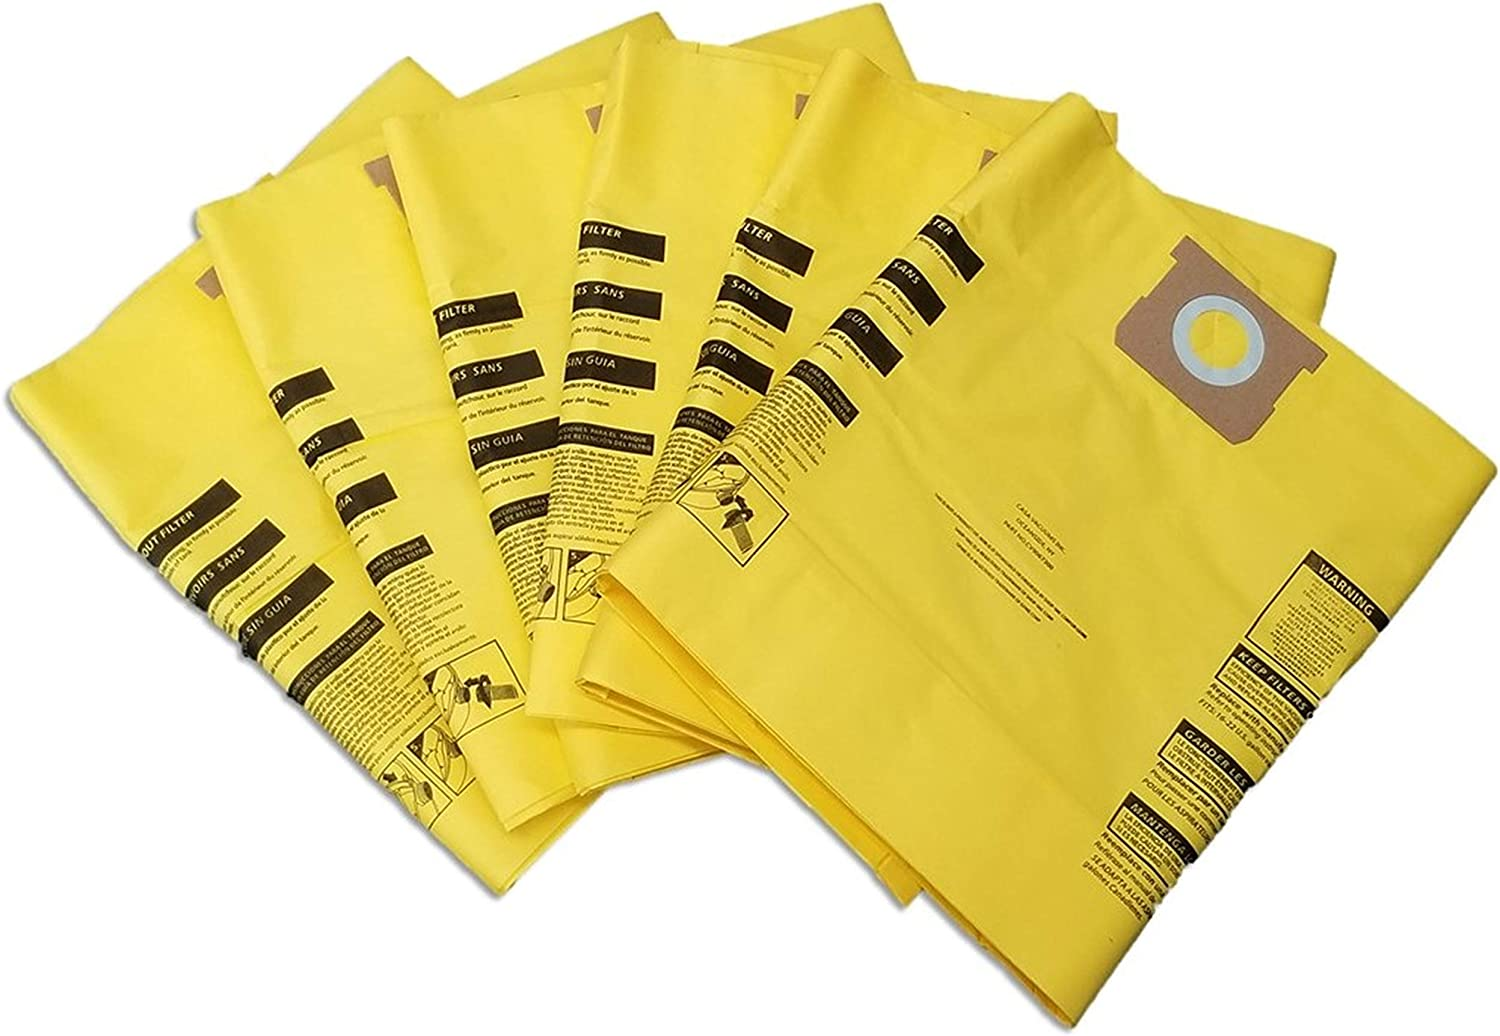 CASA VACUUMS Premium 6 Pack for Shop-Vac 15-22 Gallon, Compare to Part #'s 9067300 Hi-Efficiency - Type J - 90663 -Type G - 9066300 - Upgraded Multi-Layer Collection Bags